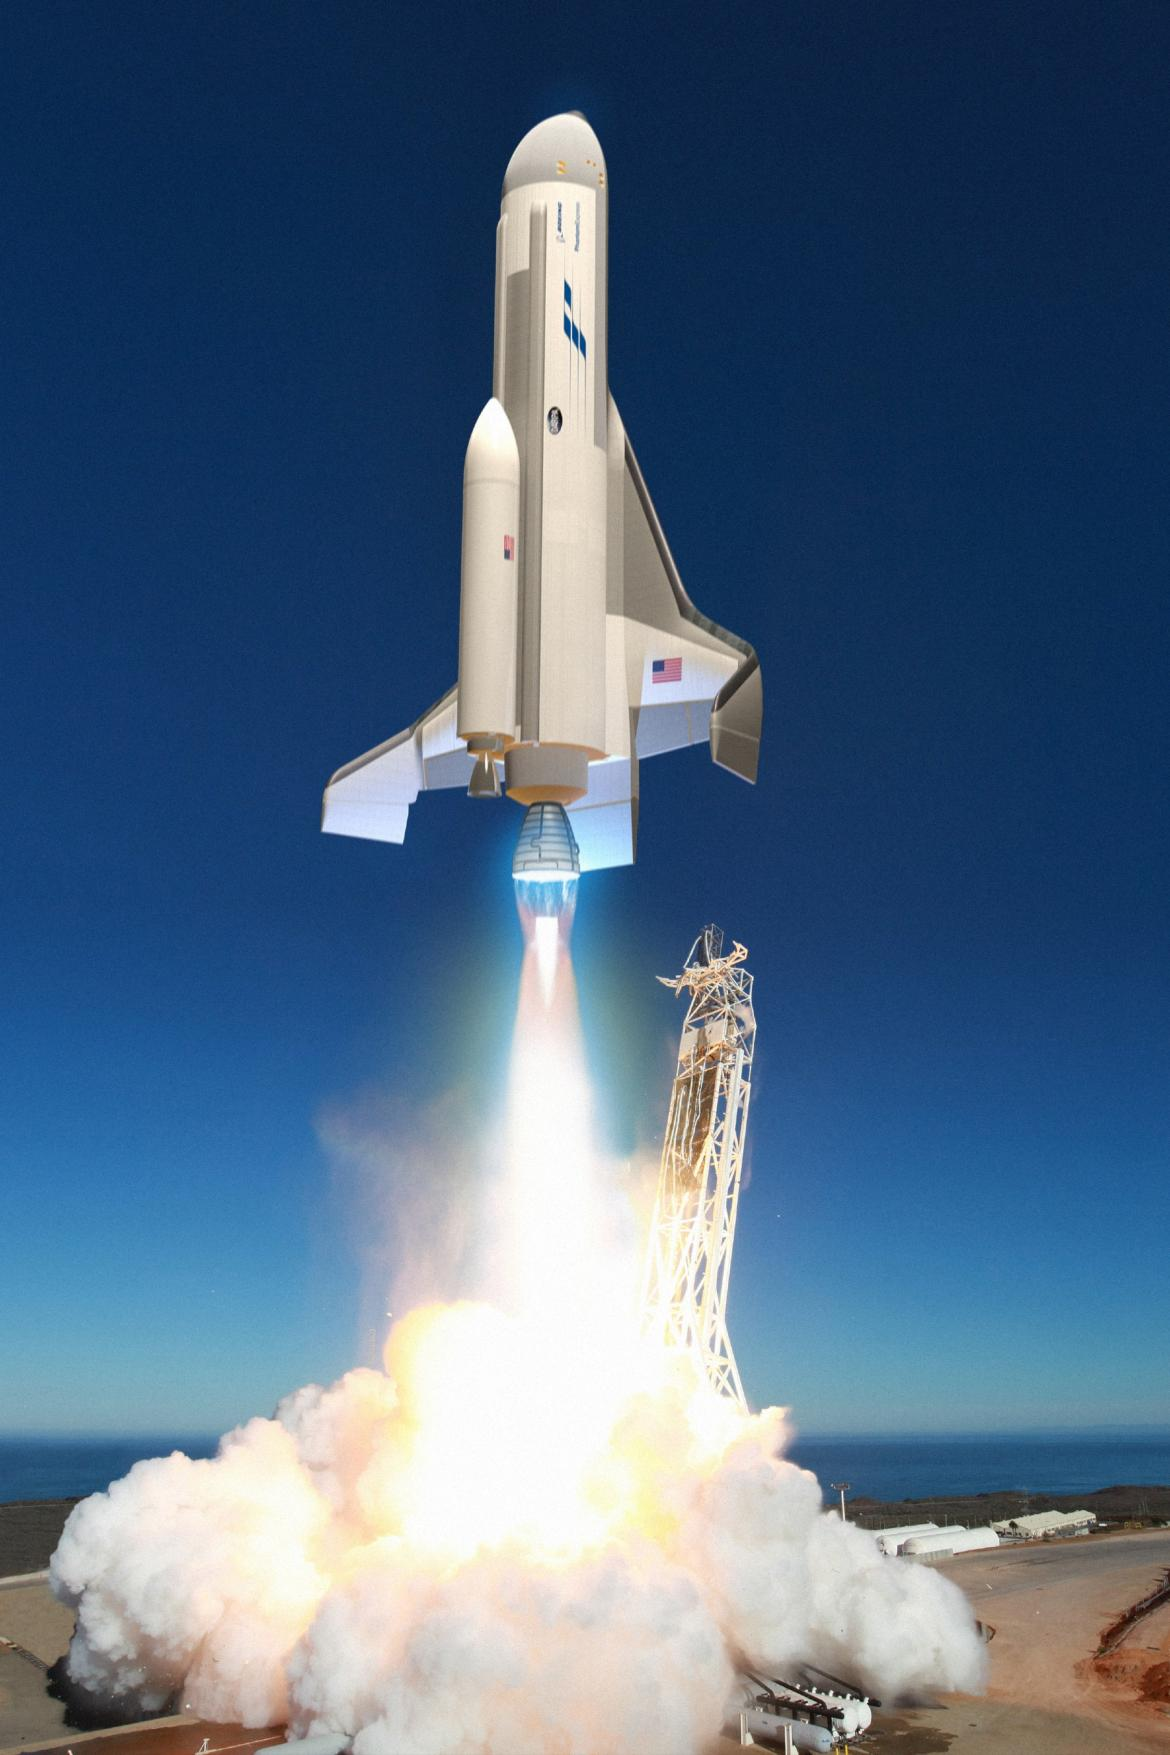 Boeing backs out of DARPA spaceplane program